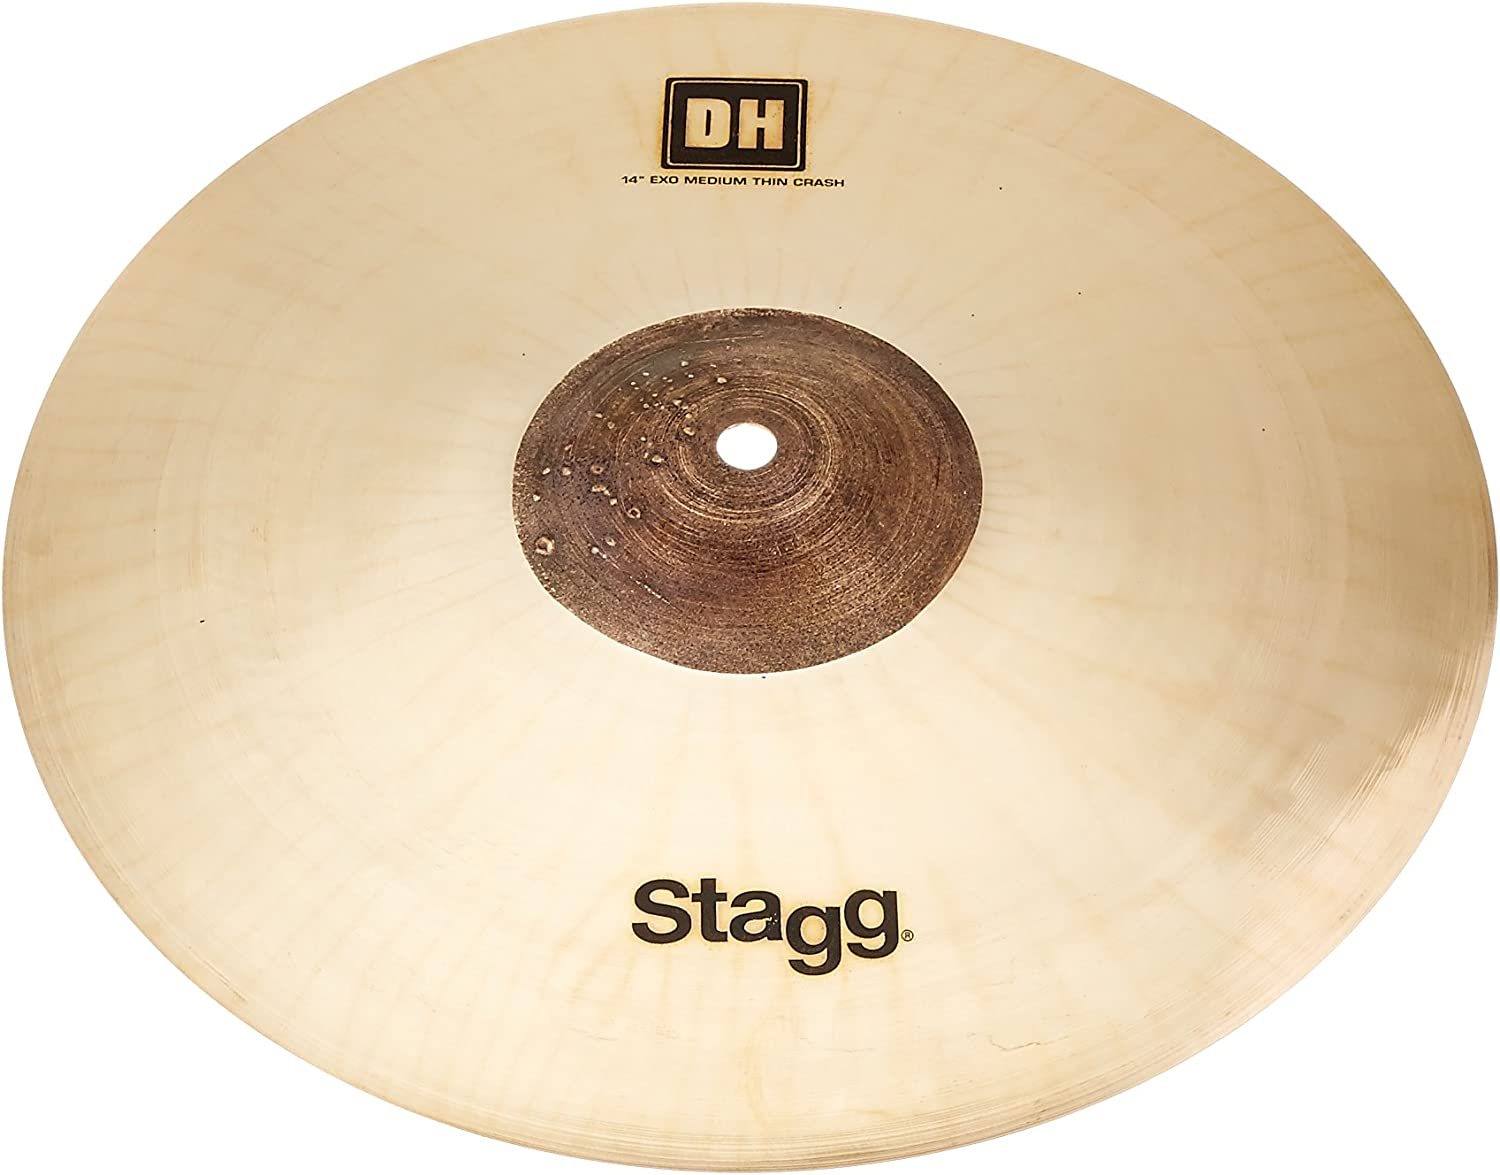 Stagg DH-CMT14E 35% gift OFF 14-Inch DH Exo Crash Cymbal Medium Thin